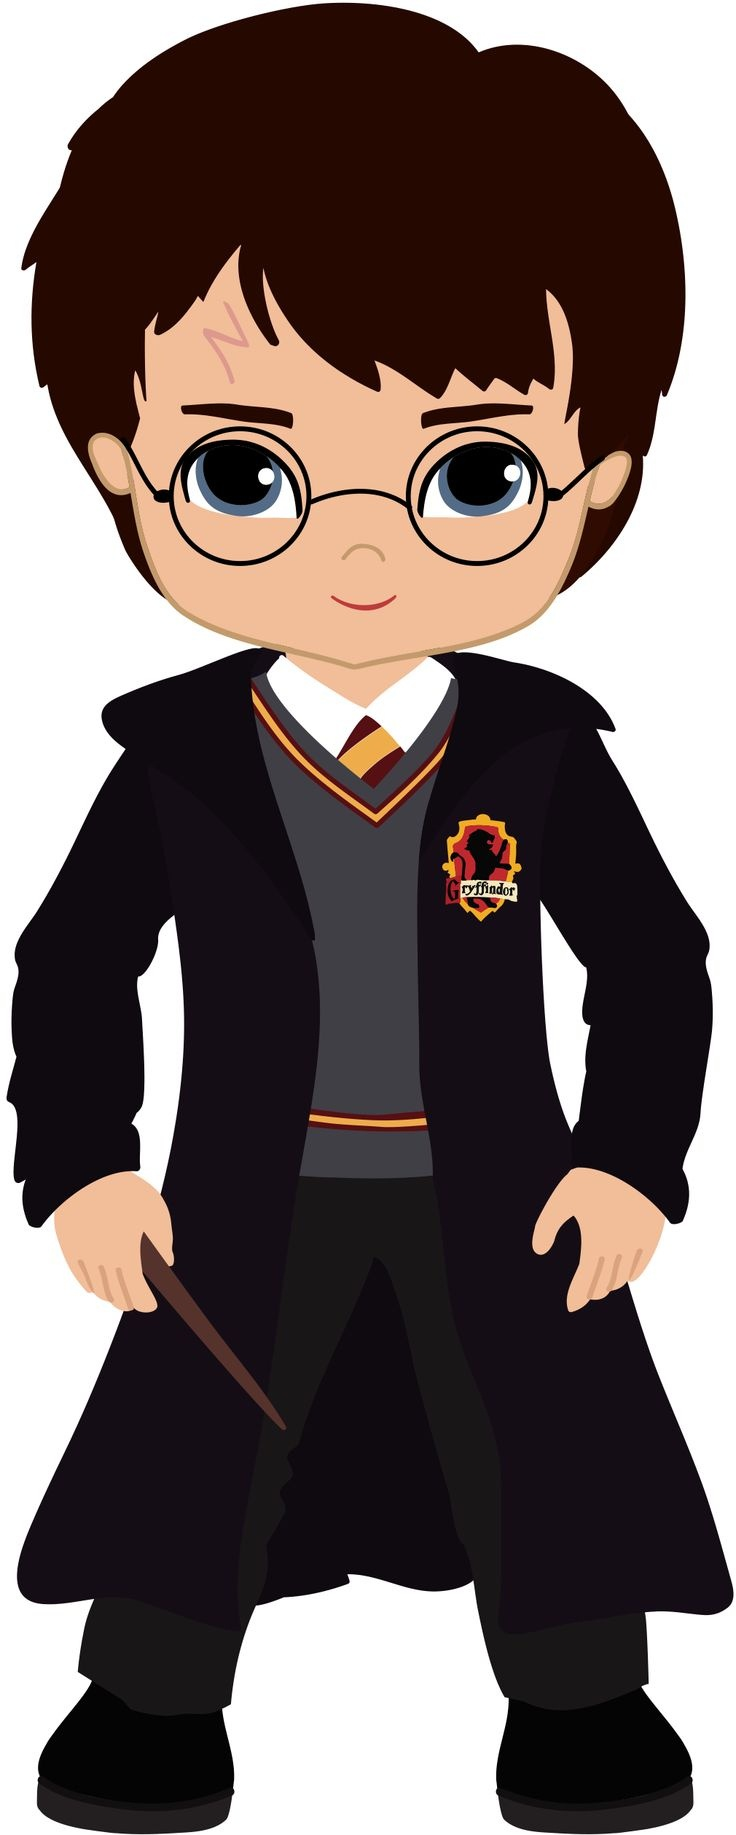 Free Harry Potter Clip Art, Download Free Clip Art, Free Clip Art On - Free Printable Harry Potter Clip Art